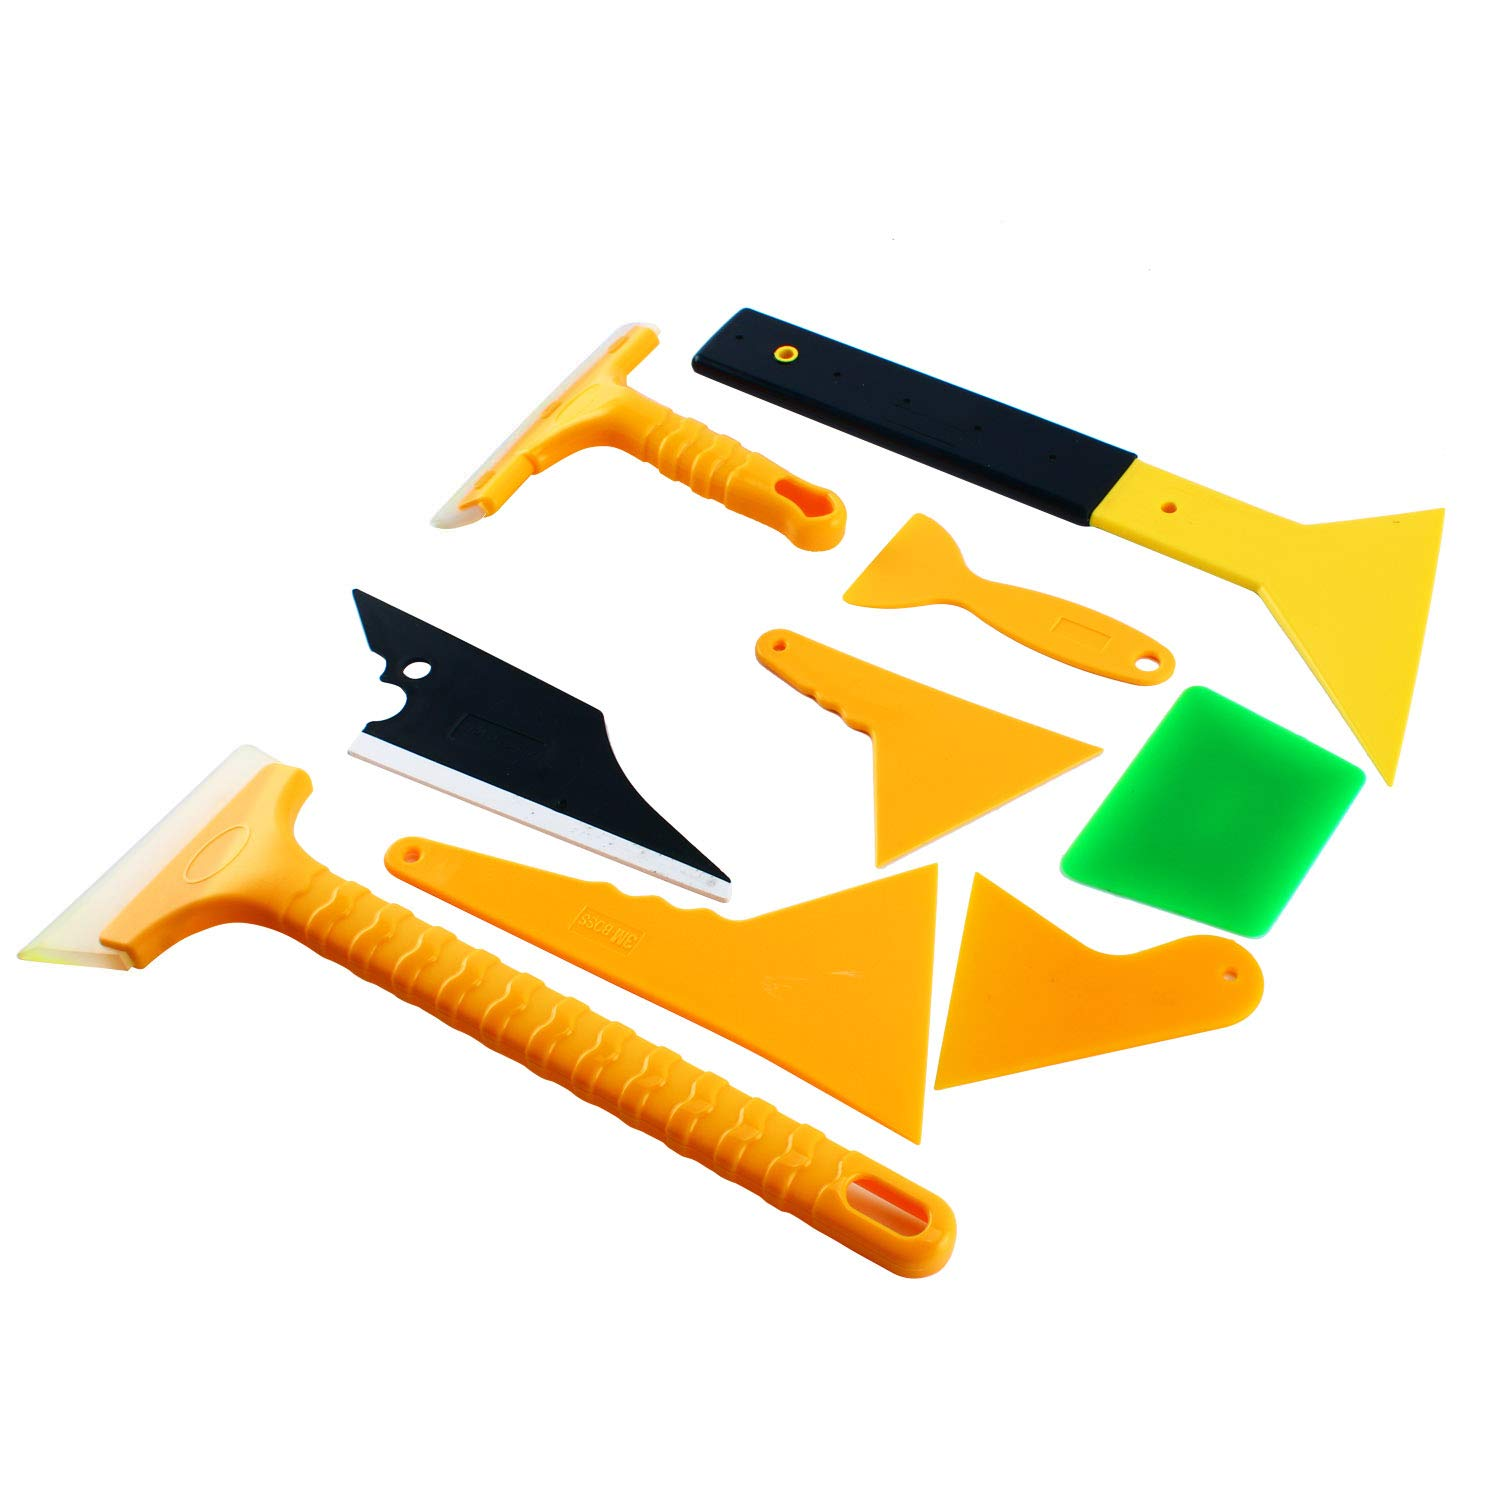 10-Piece Professional Car Window Tint Film Install Tool for All Edges and Corners